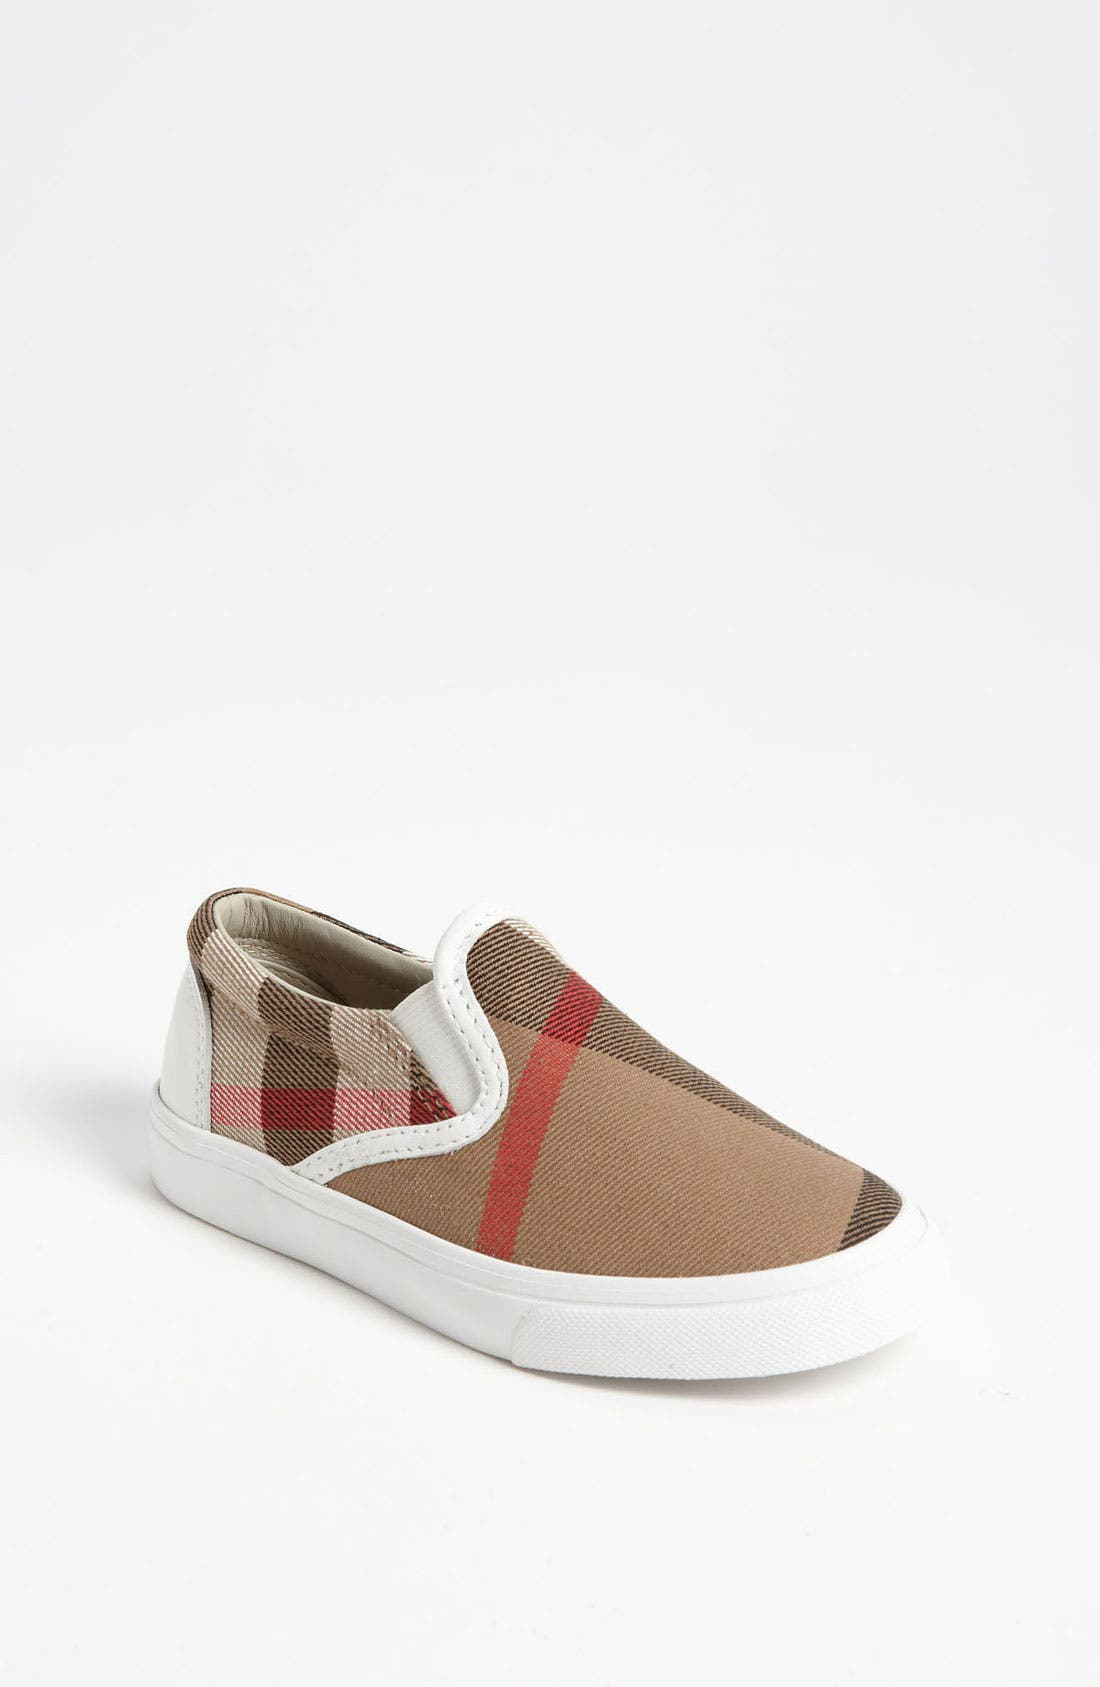 Alternate Image 1 Selected - Burberry Linus Slip-On (Walker, Toddler & Little Kid)